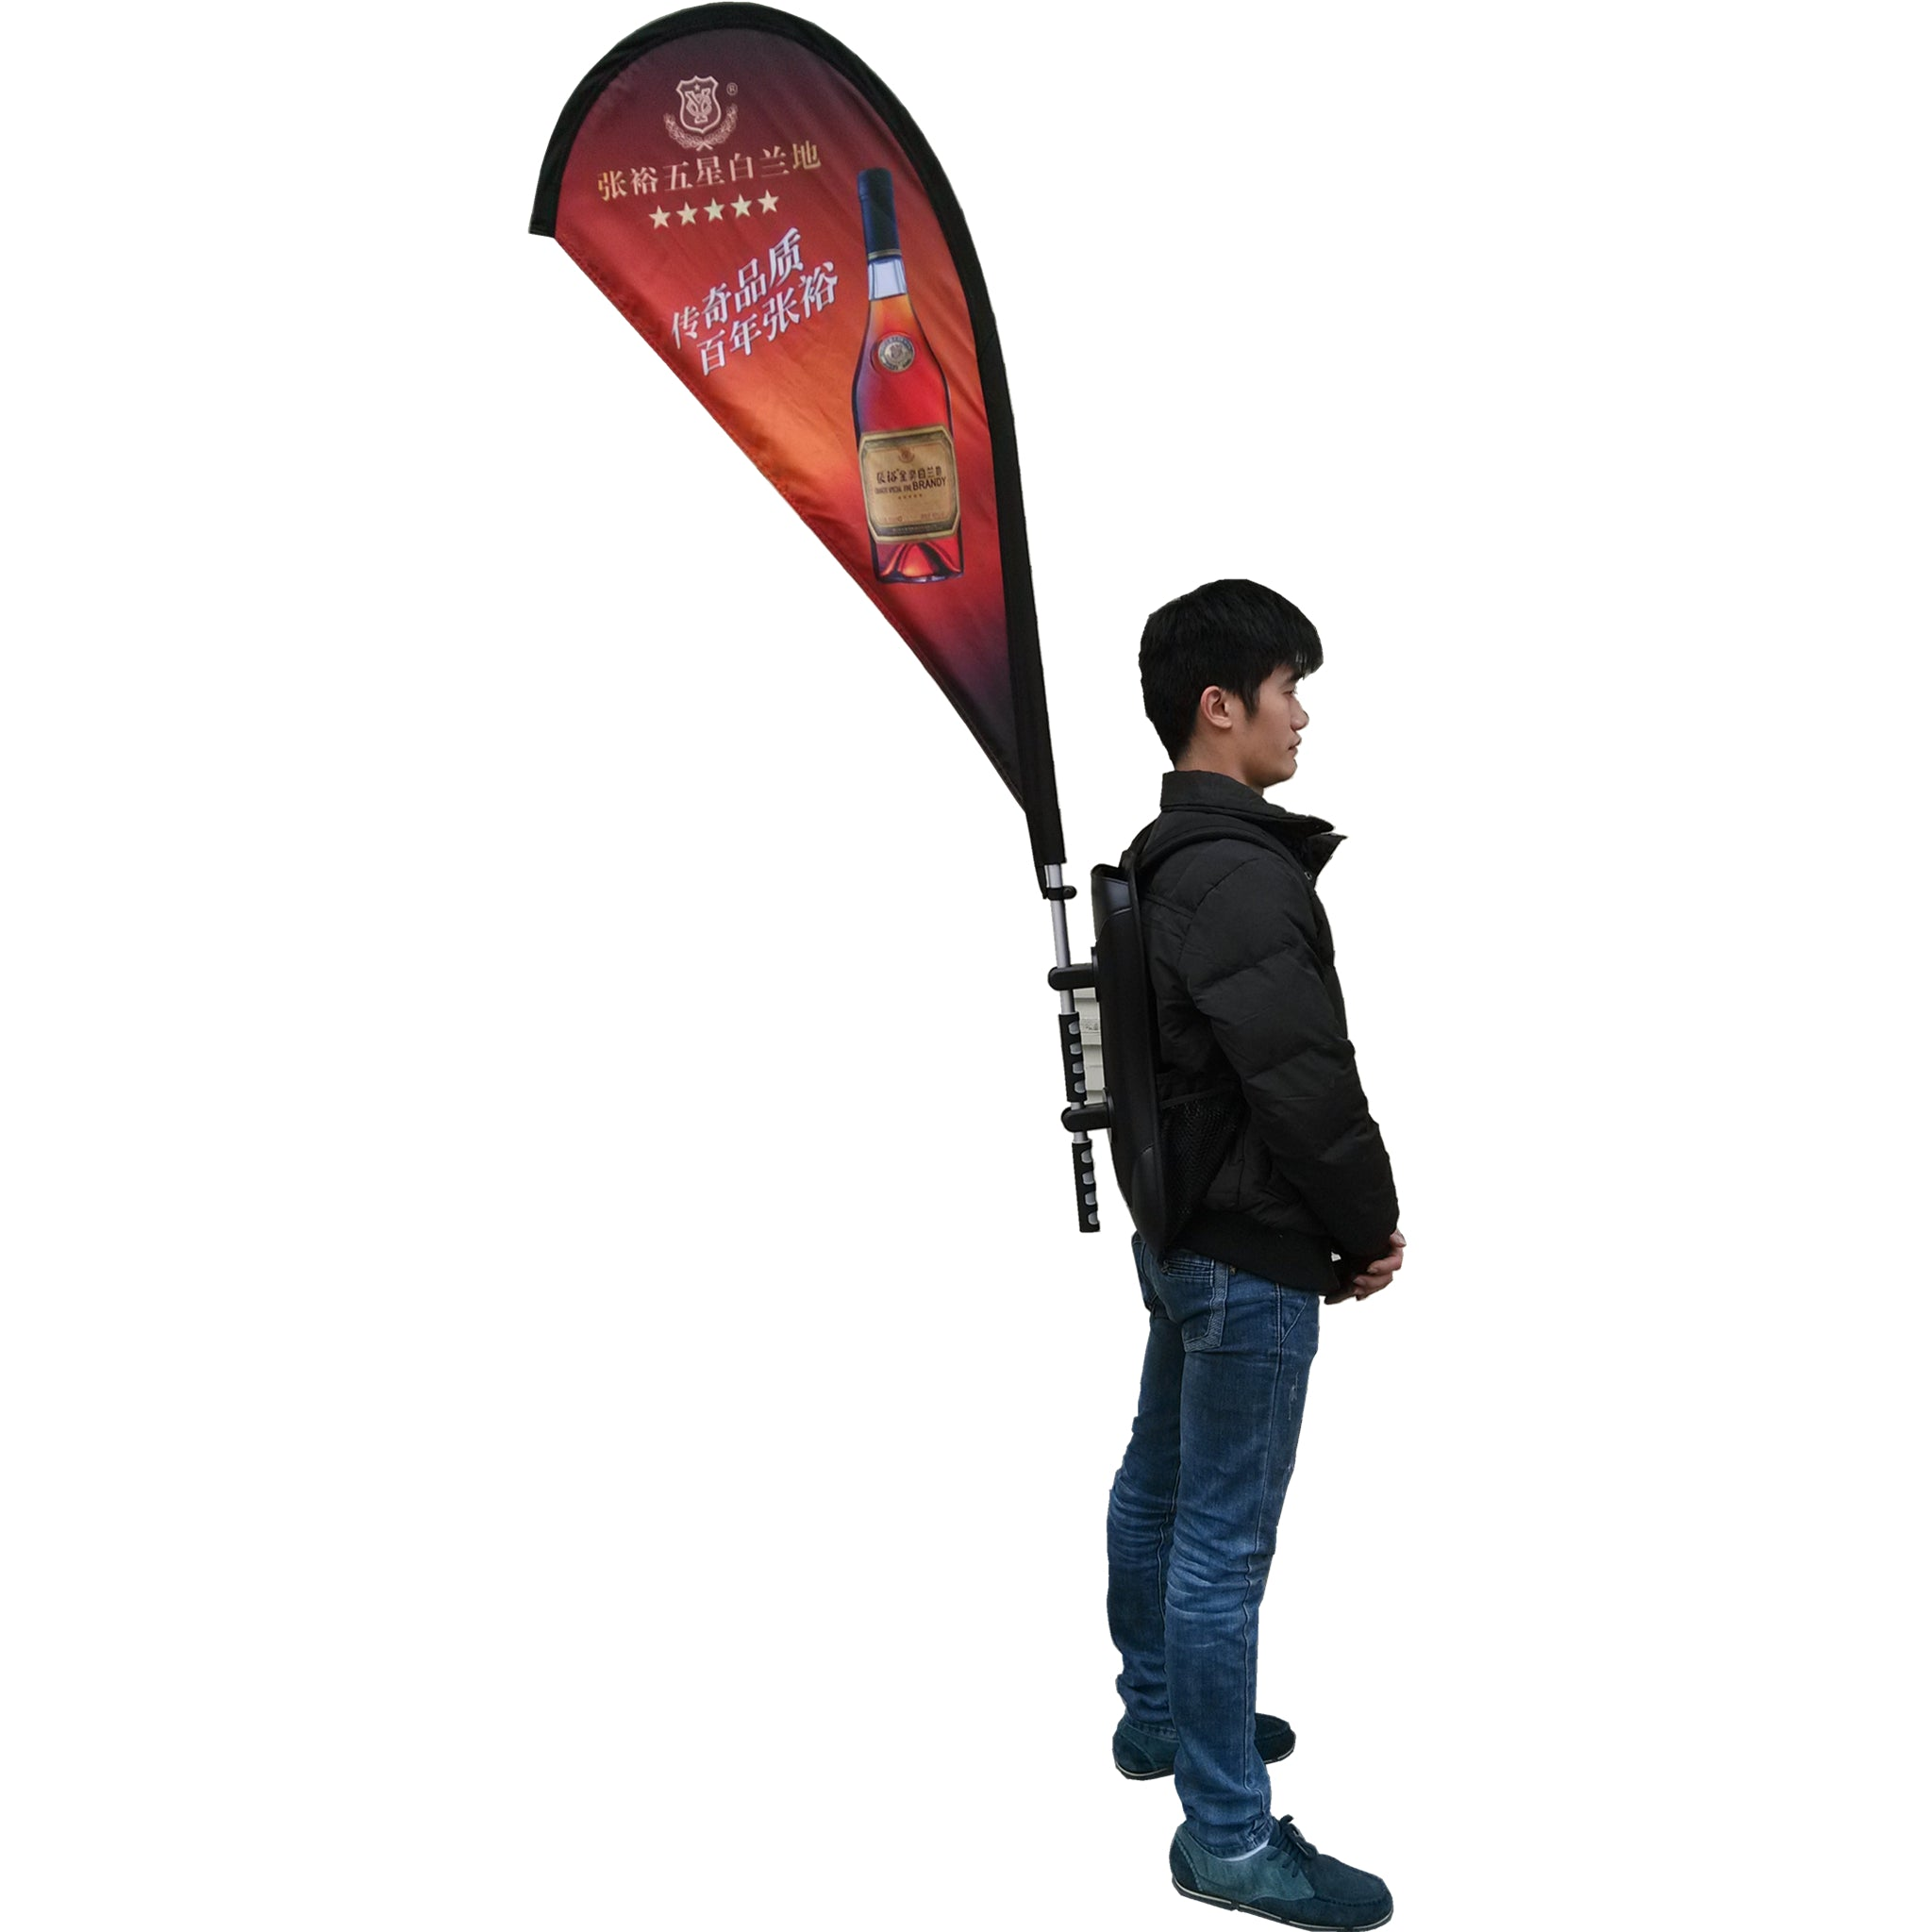 backpack banners flags for walking advertising parade advertising outdoor